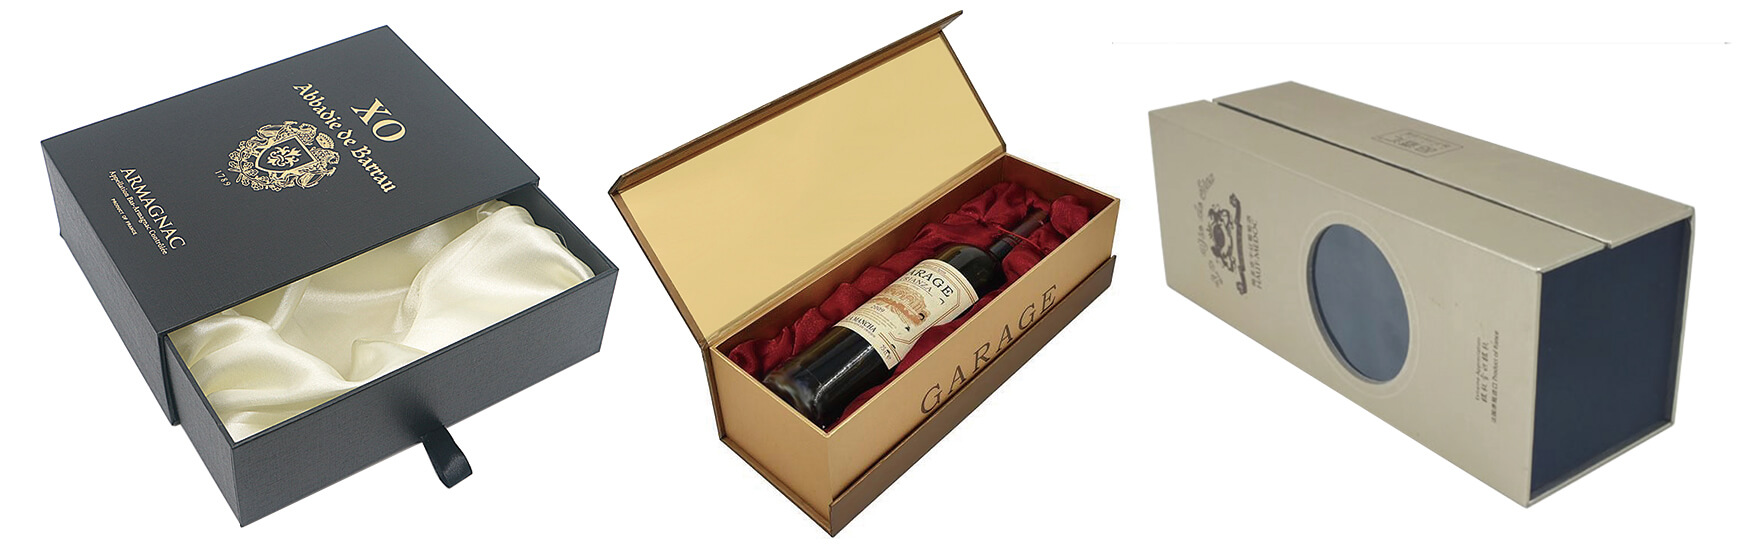 Rigid Hard Cardboard Gift Box For Wine Bottle